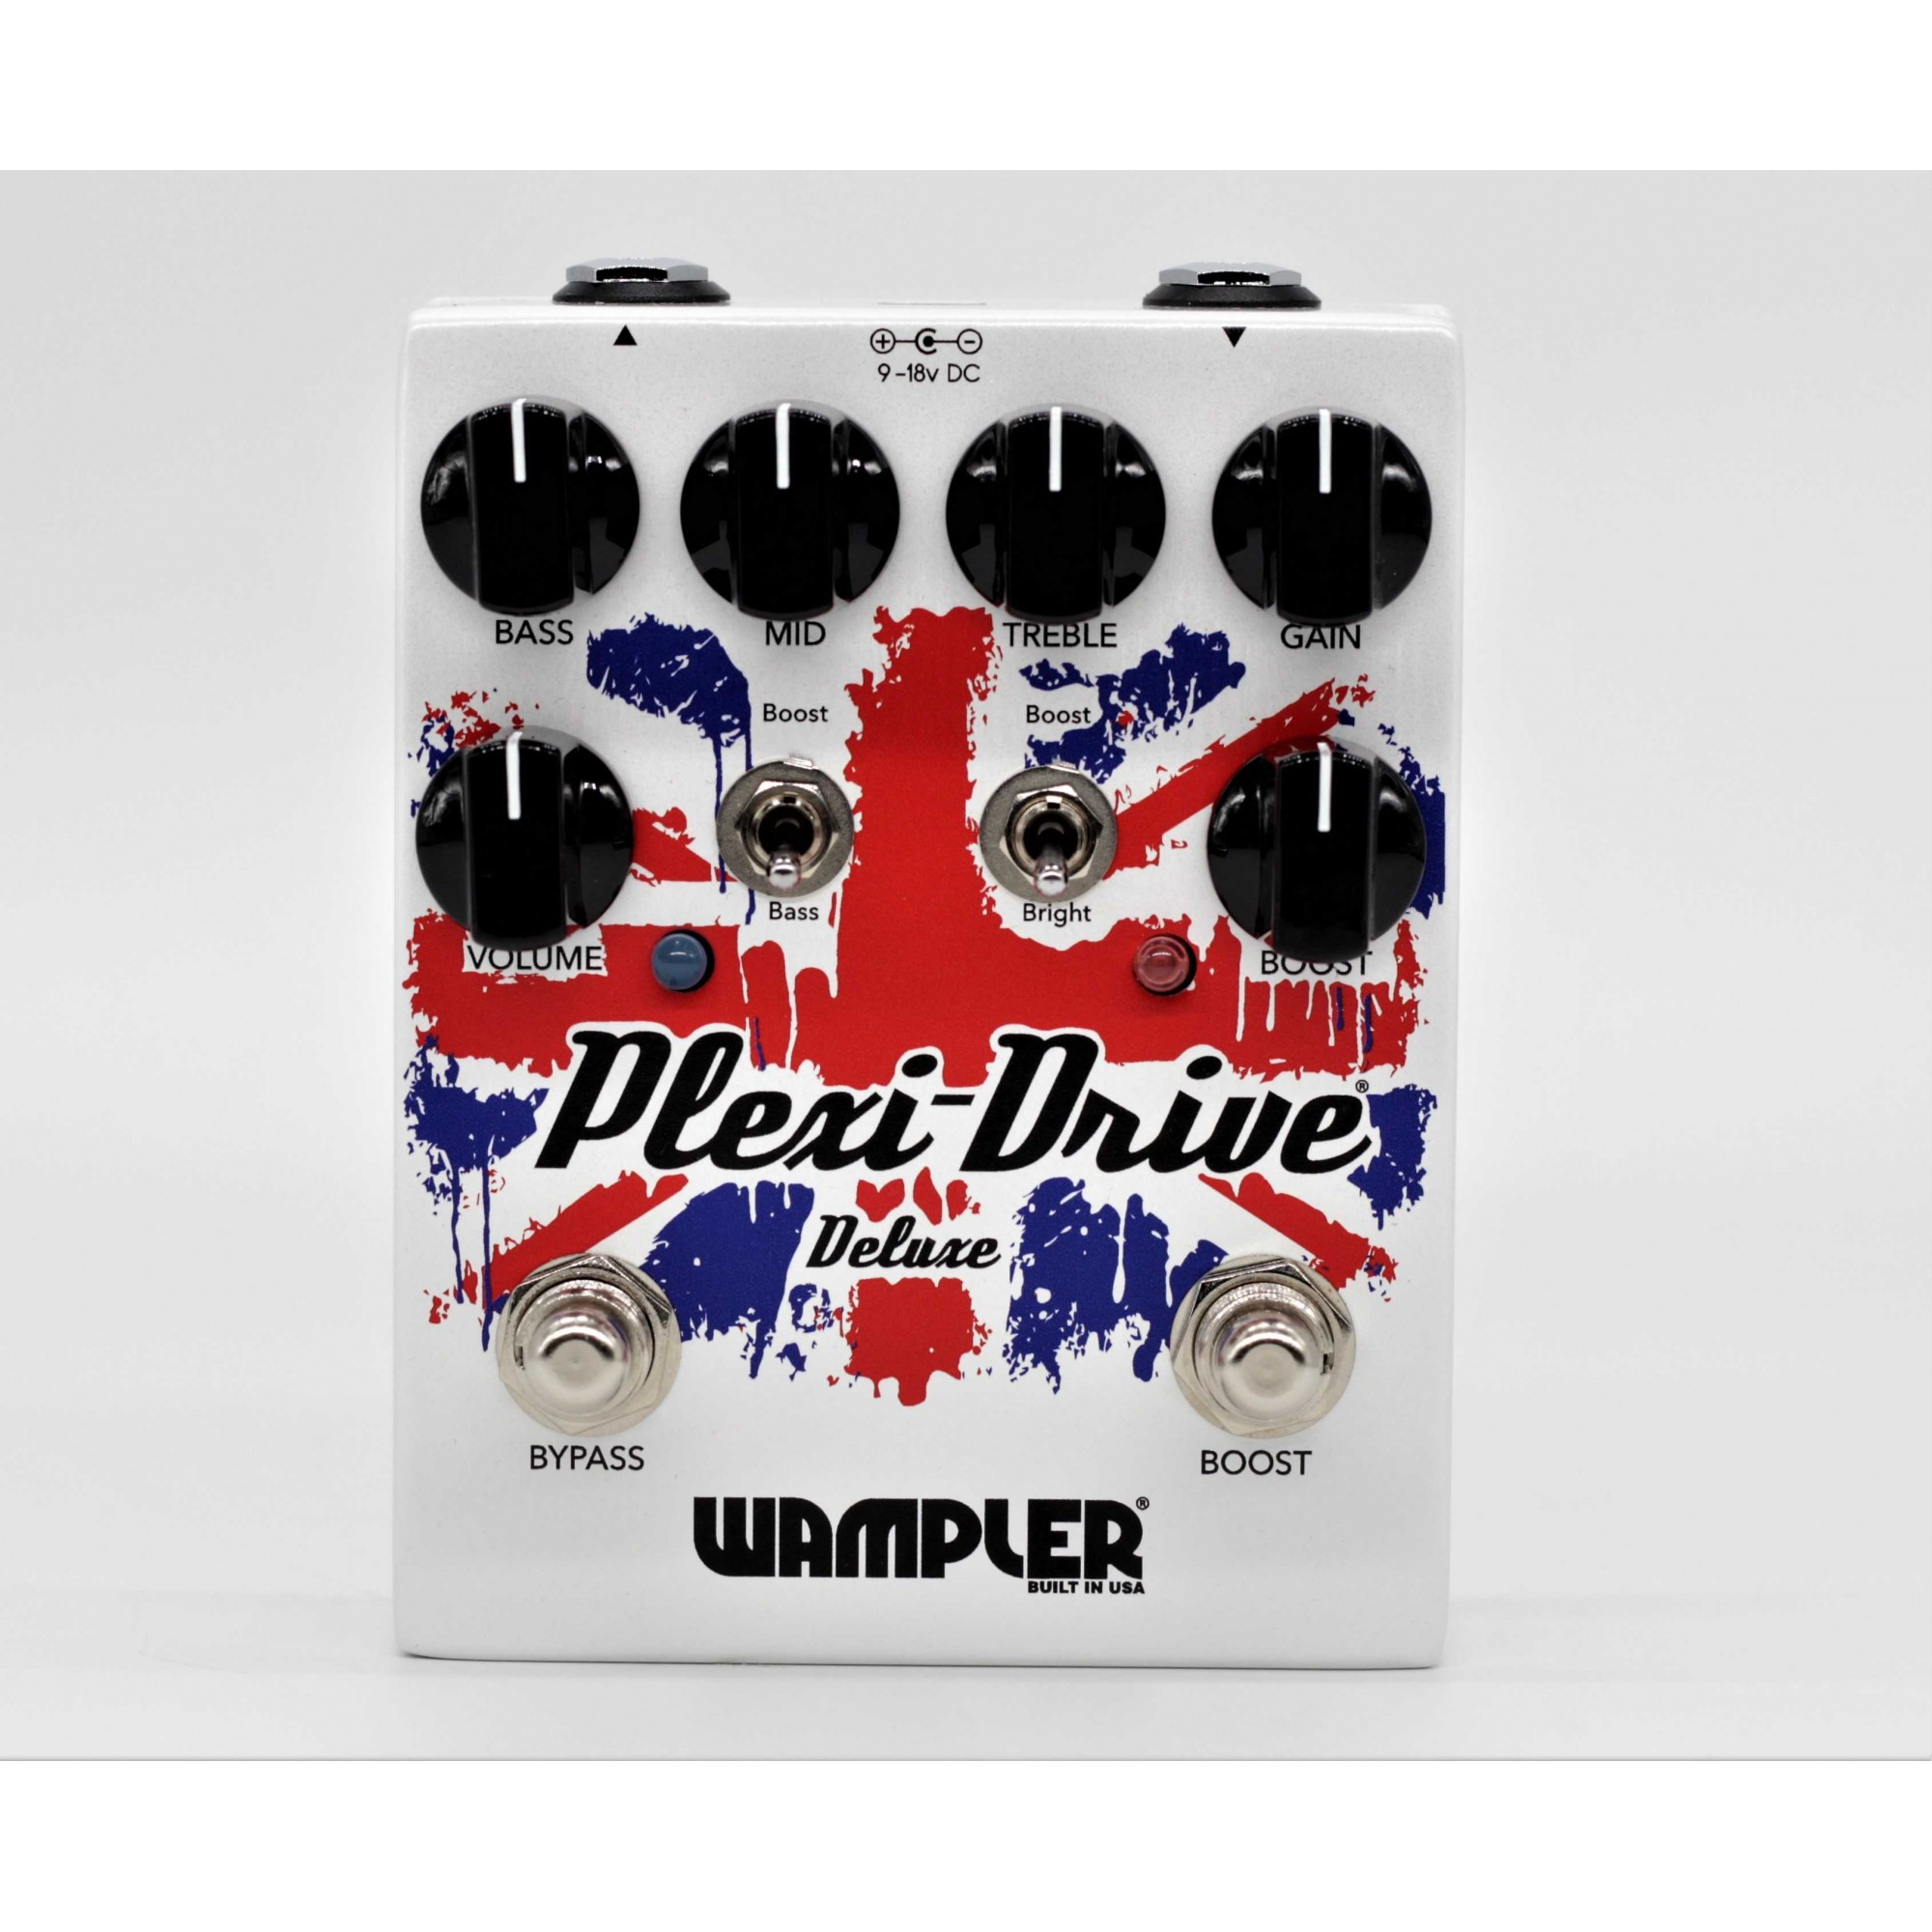 Wampler Pedals Plexi Drive Deluxe Overdrive